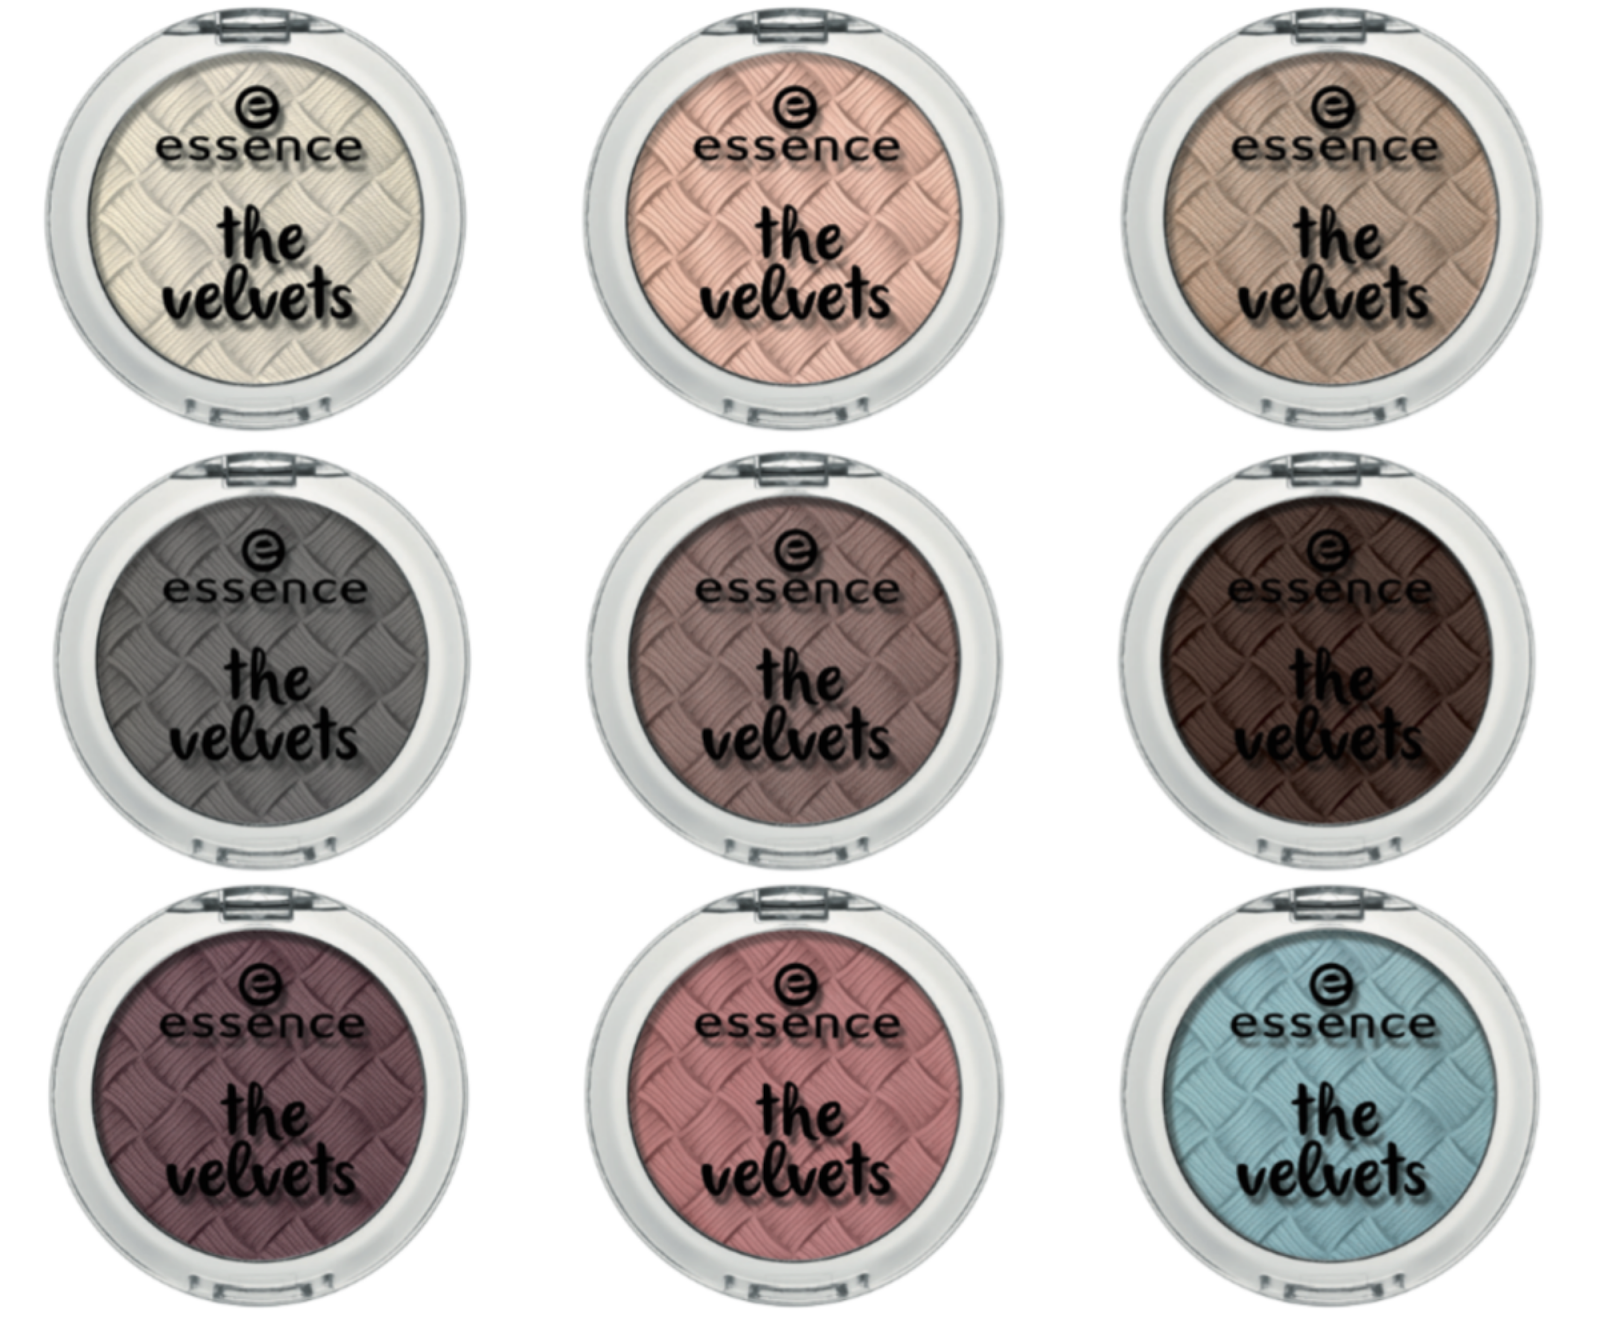 New Essence Products Spring/Summer 2016